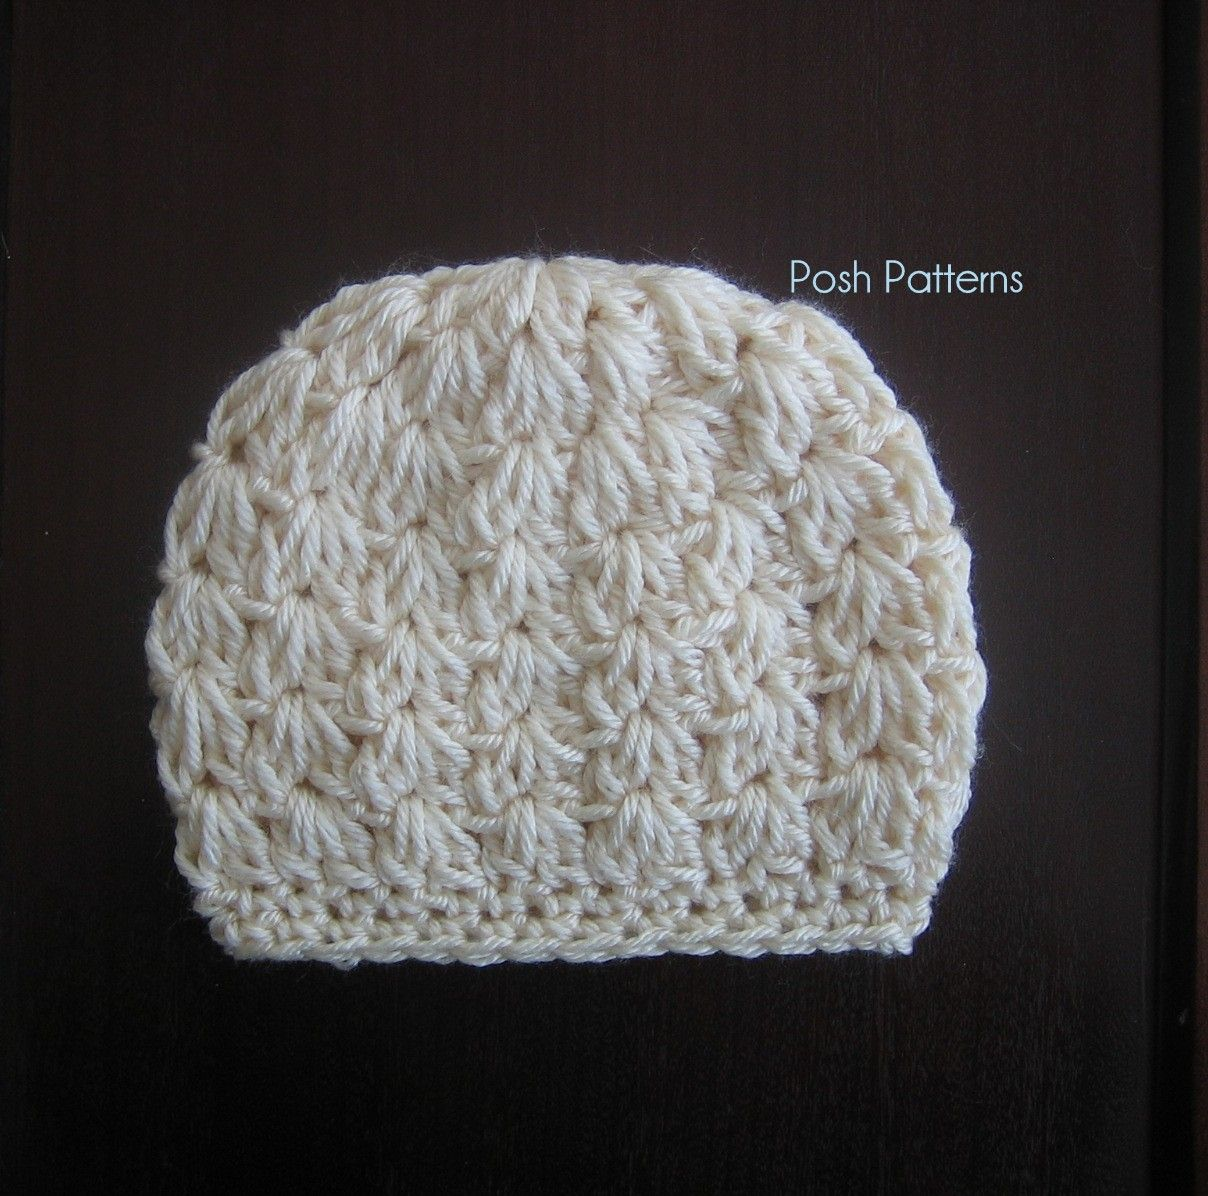 Crochet Pattern Cluster Shells Crochet Hat Pattern Crochet Hat Pattern Crochet Baby Hat Patterns Crochet Baby Hats